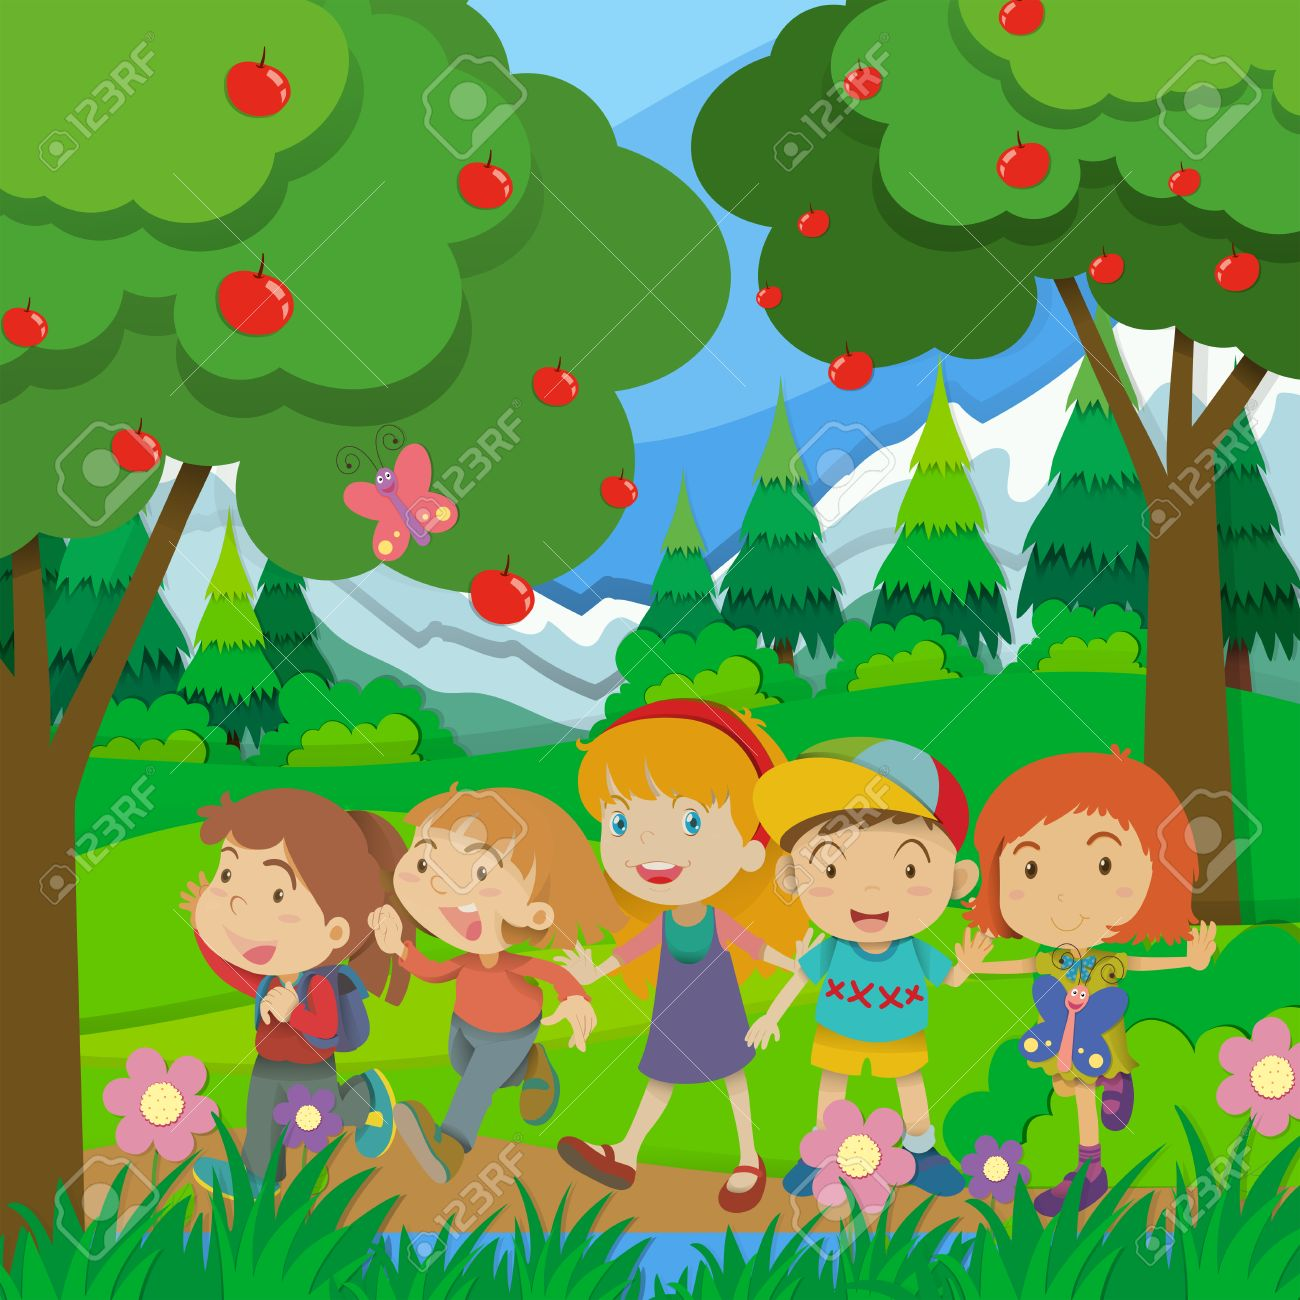 hight resolution of children walking in the forest illustration stock vector 50684544